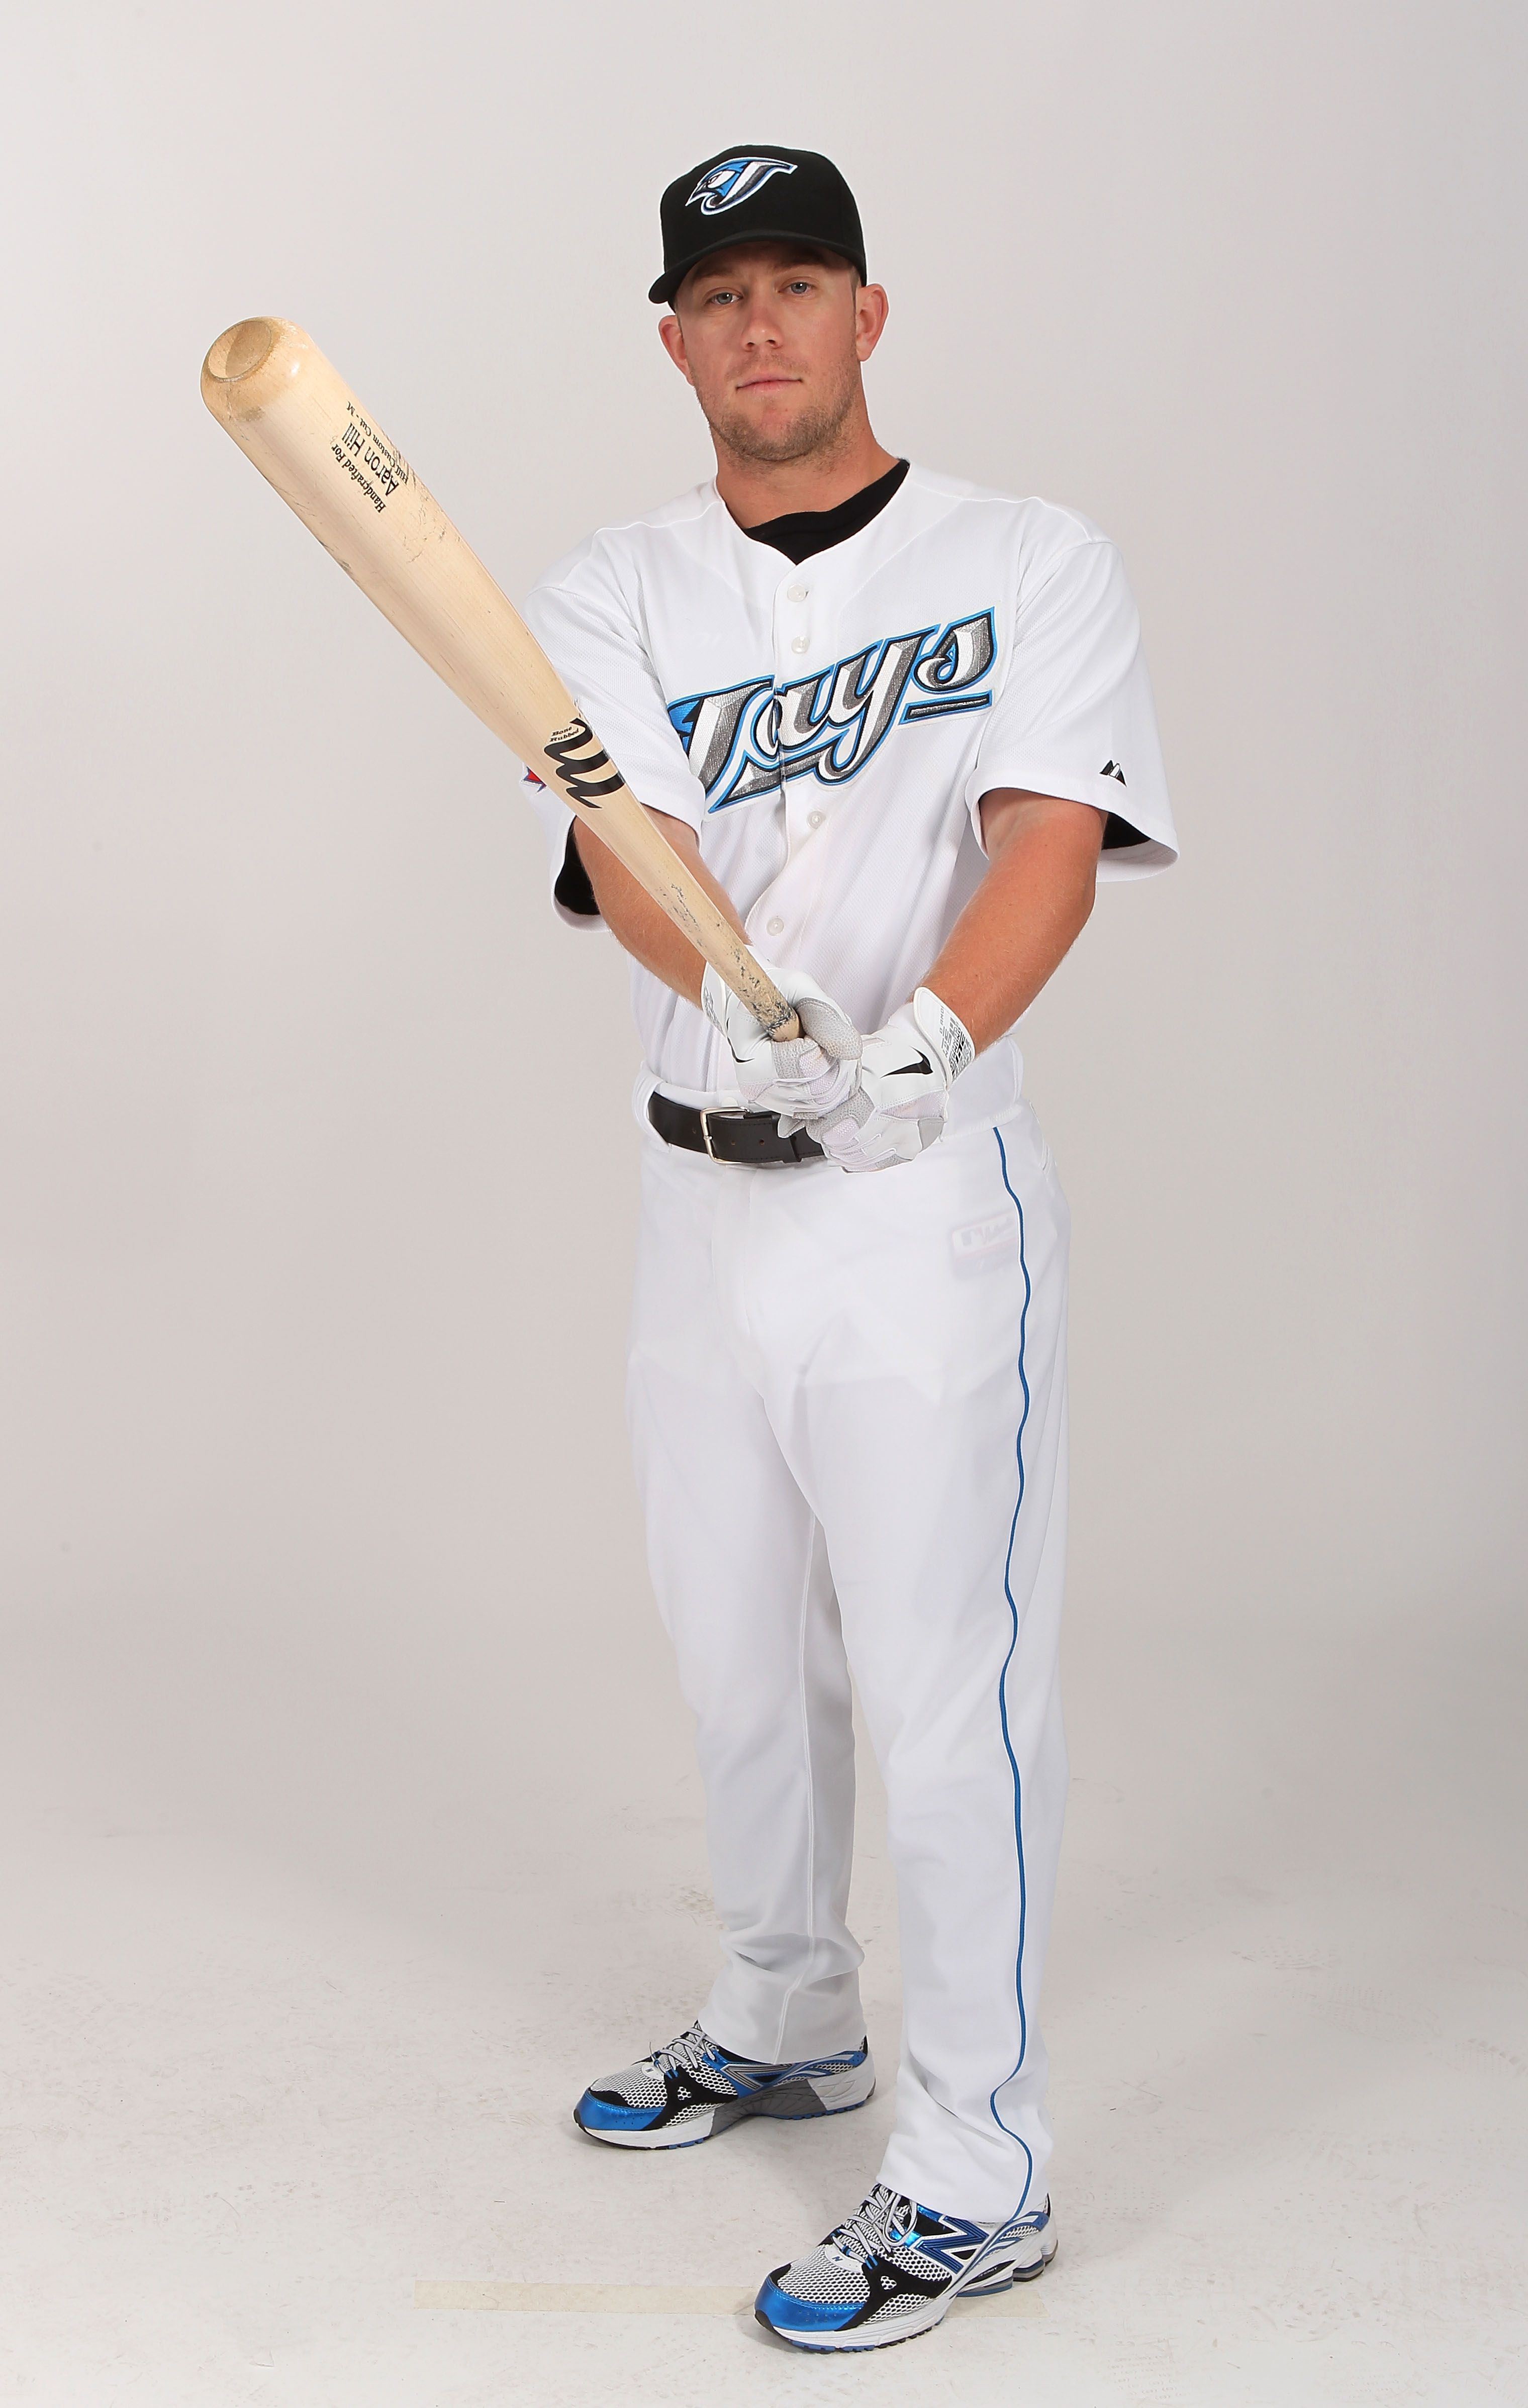 DUNEDIN, FL - FEBRUARY 20:  Aaron Hill #2  of the Toronto Blue Jays poses during photo day at Florida Auto Exchange Stadium on February 20, 2011 in Dunedin, Florida.  (Photo by Nick Laham/Getty Images)